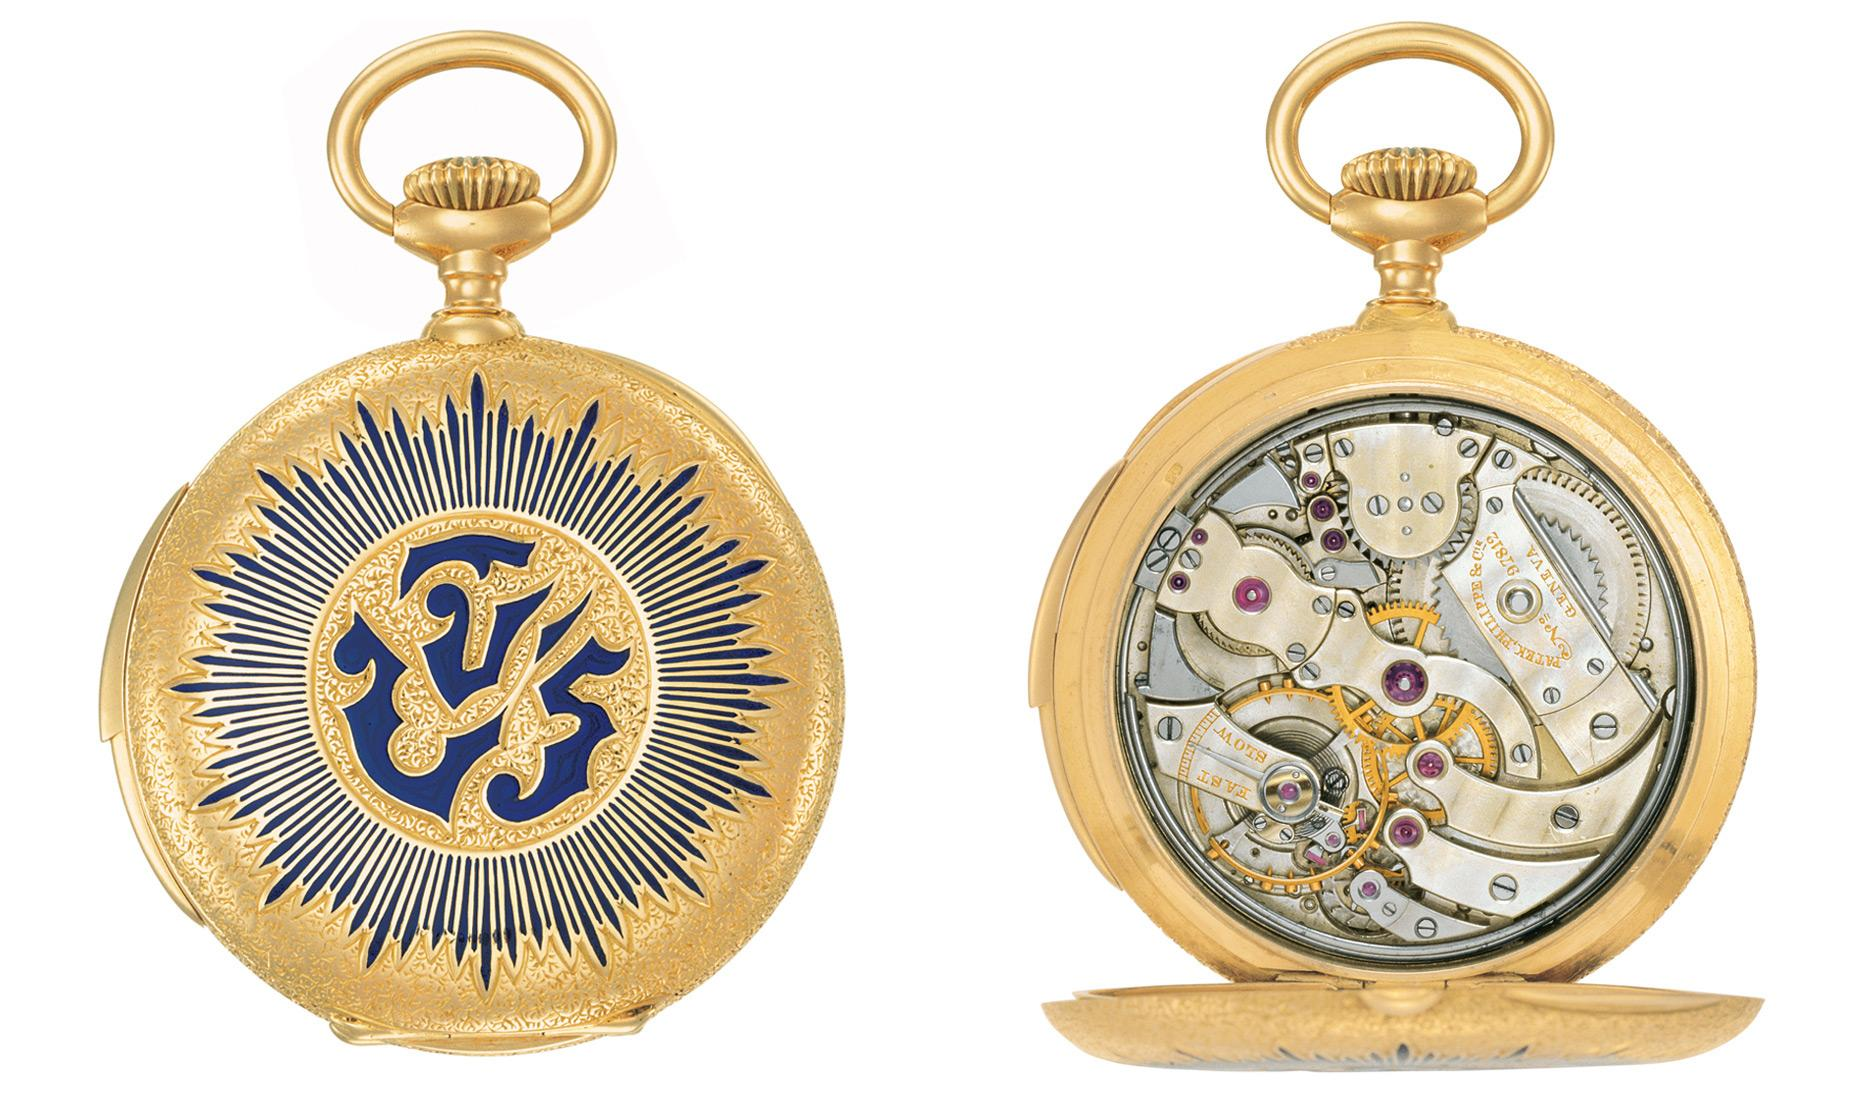 King Rama V pocket watch